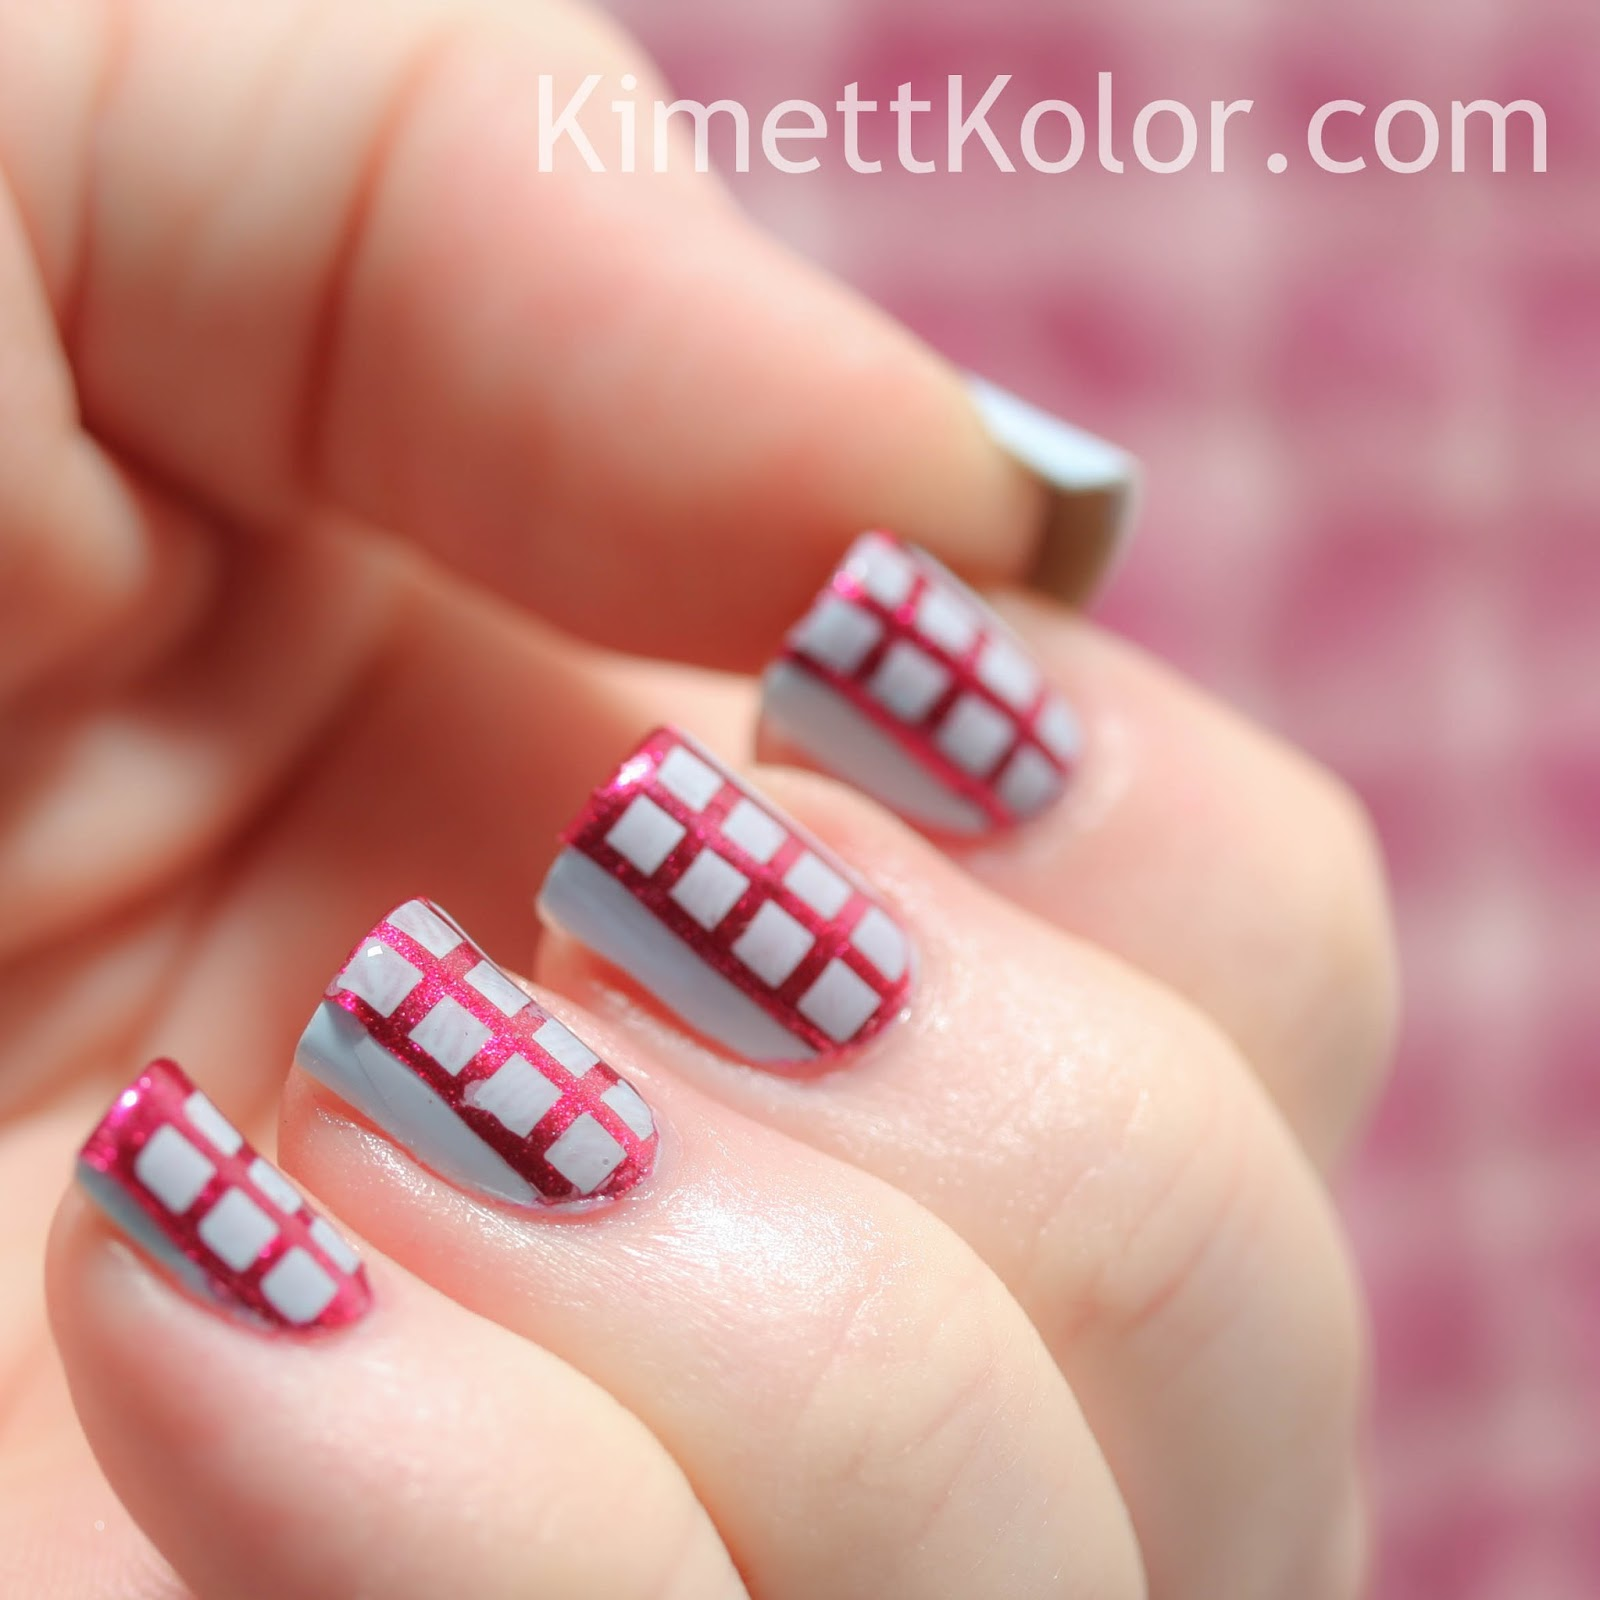 https://www.kimettkolor.com/2014/02/four-squares-for-fashion.html